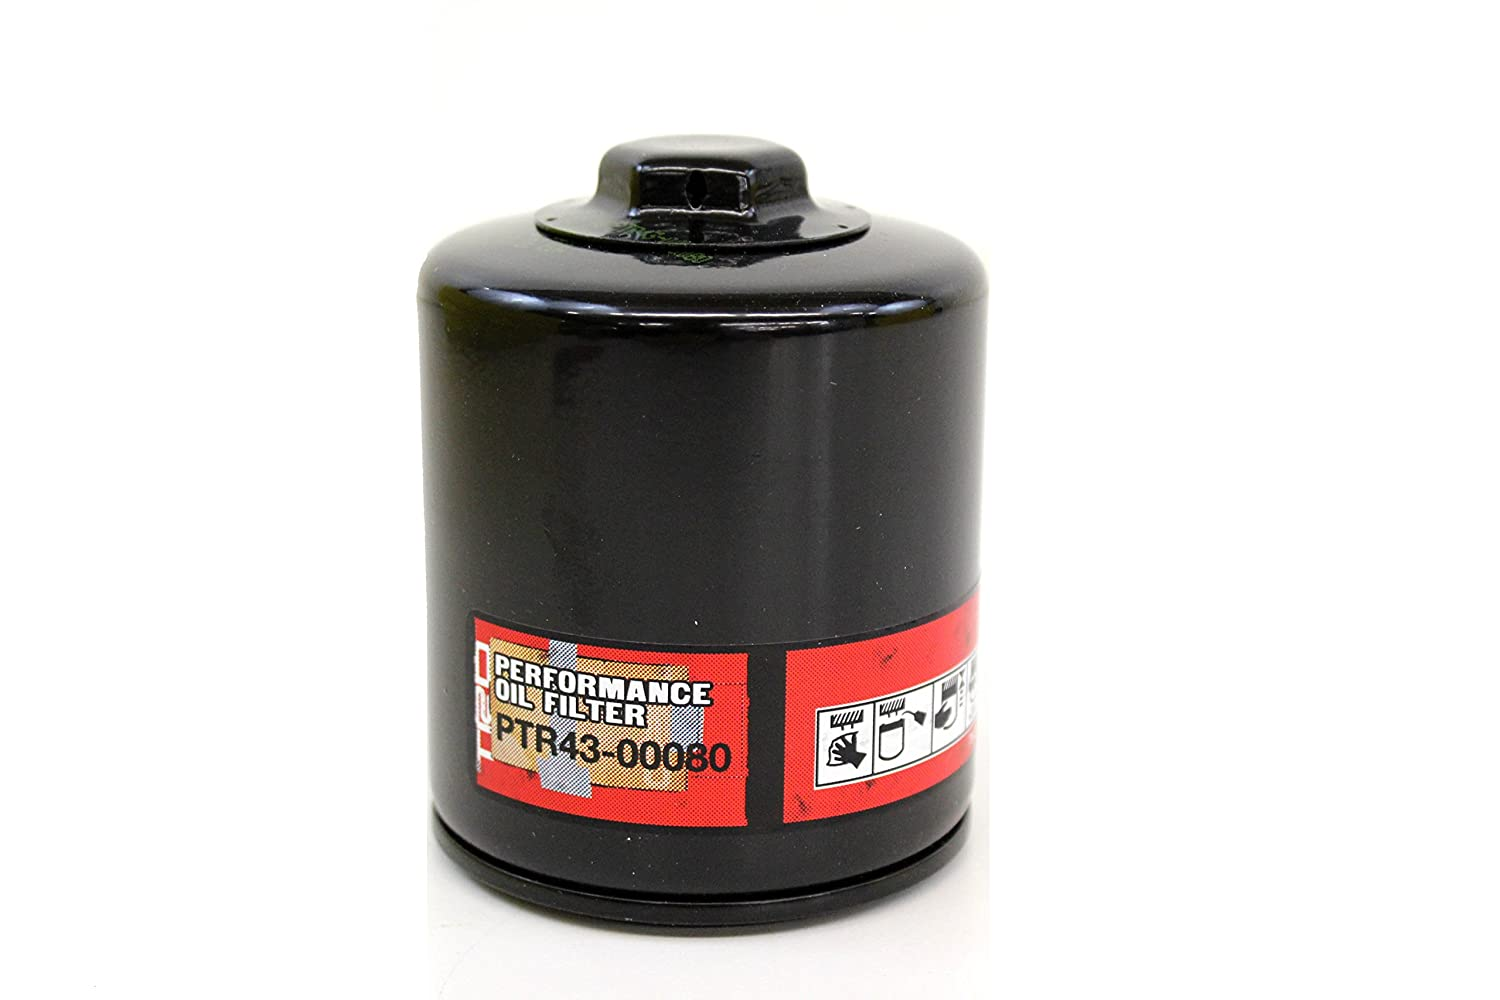 Genuine Toyota Parts PTR43-00080 TRD Oil Filter